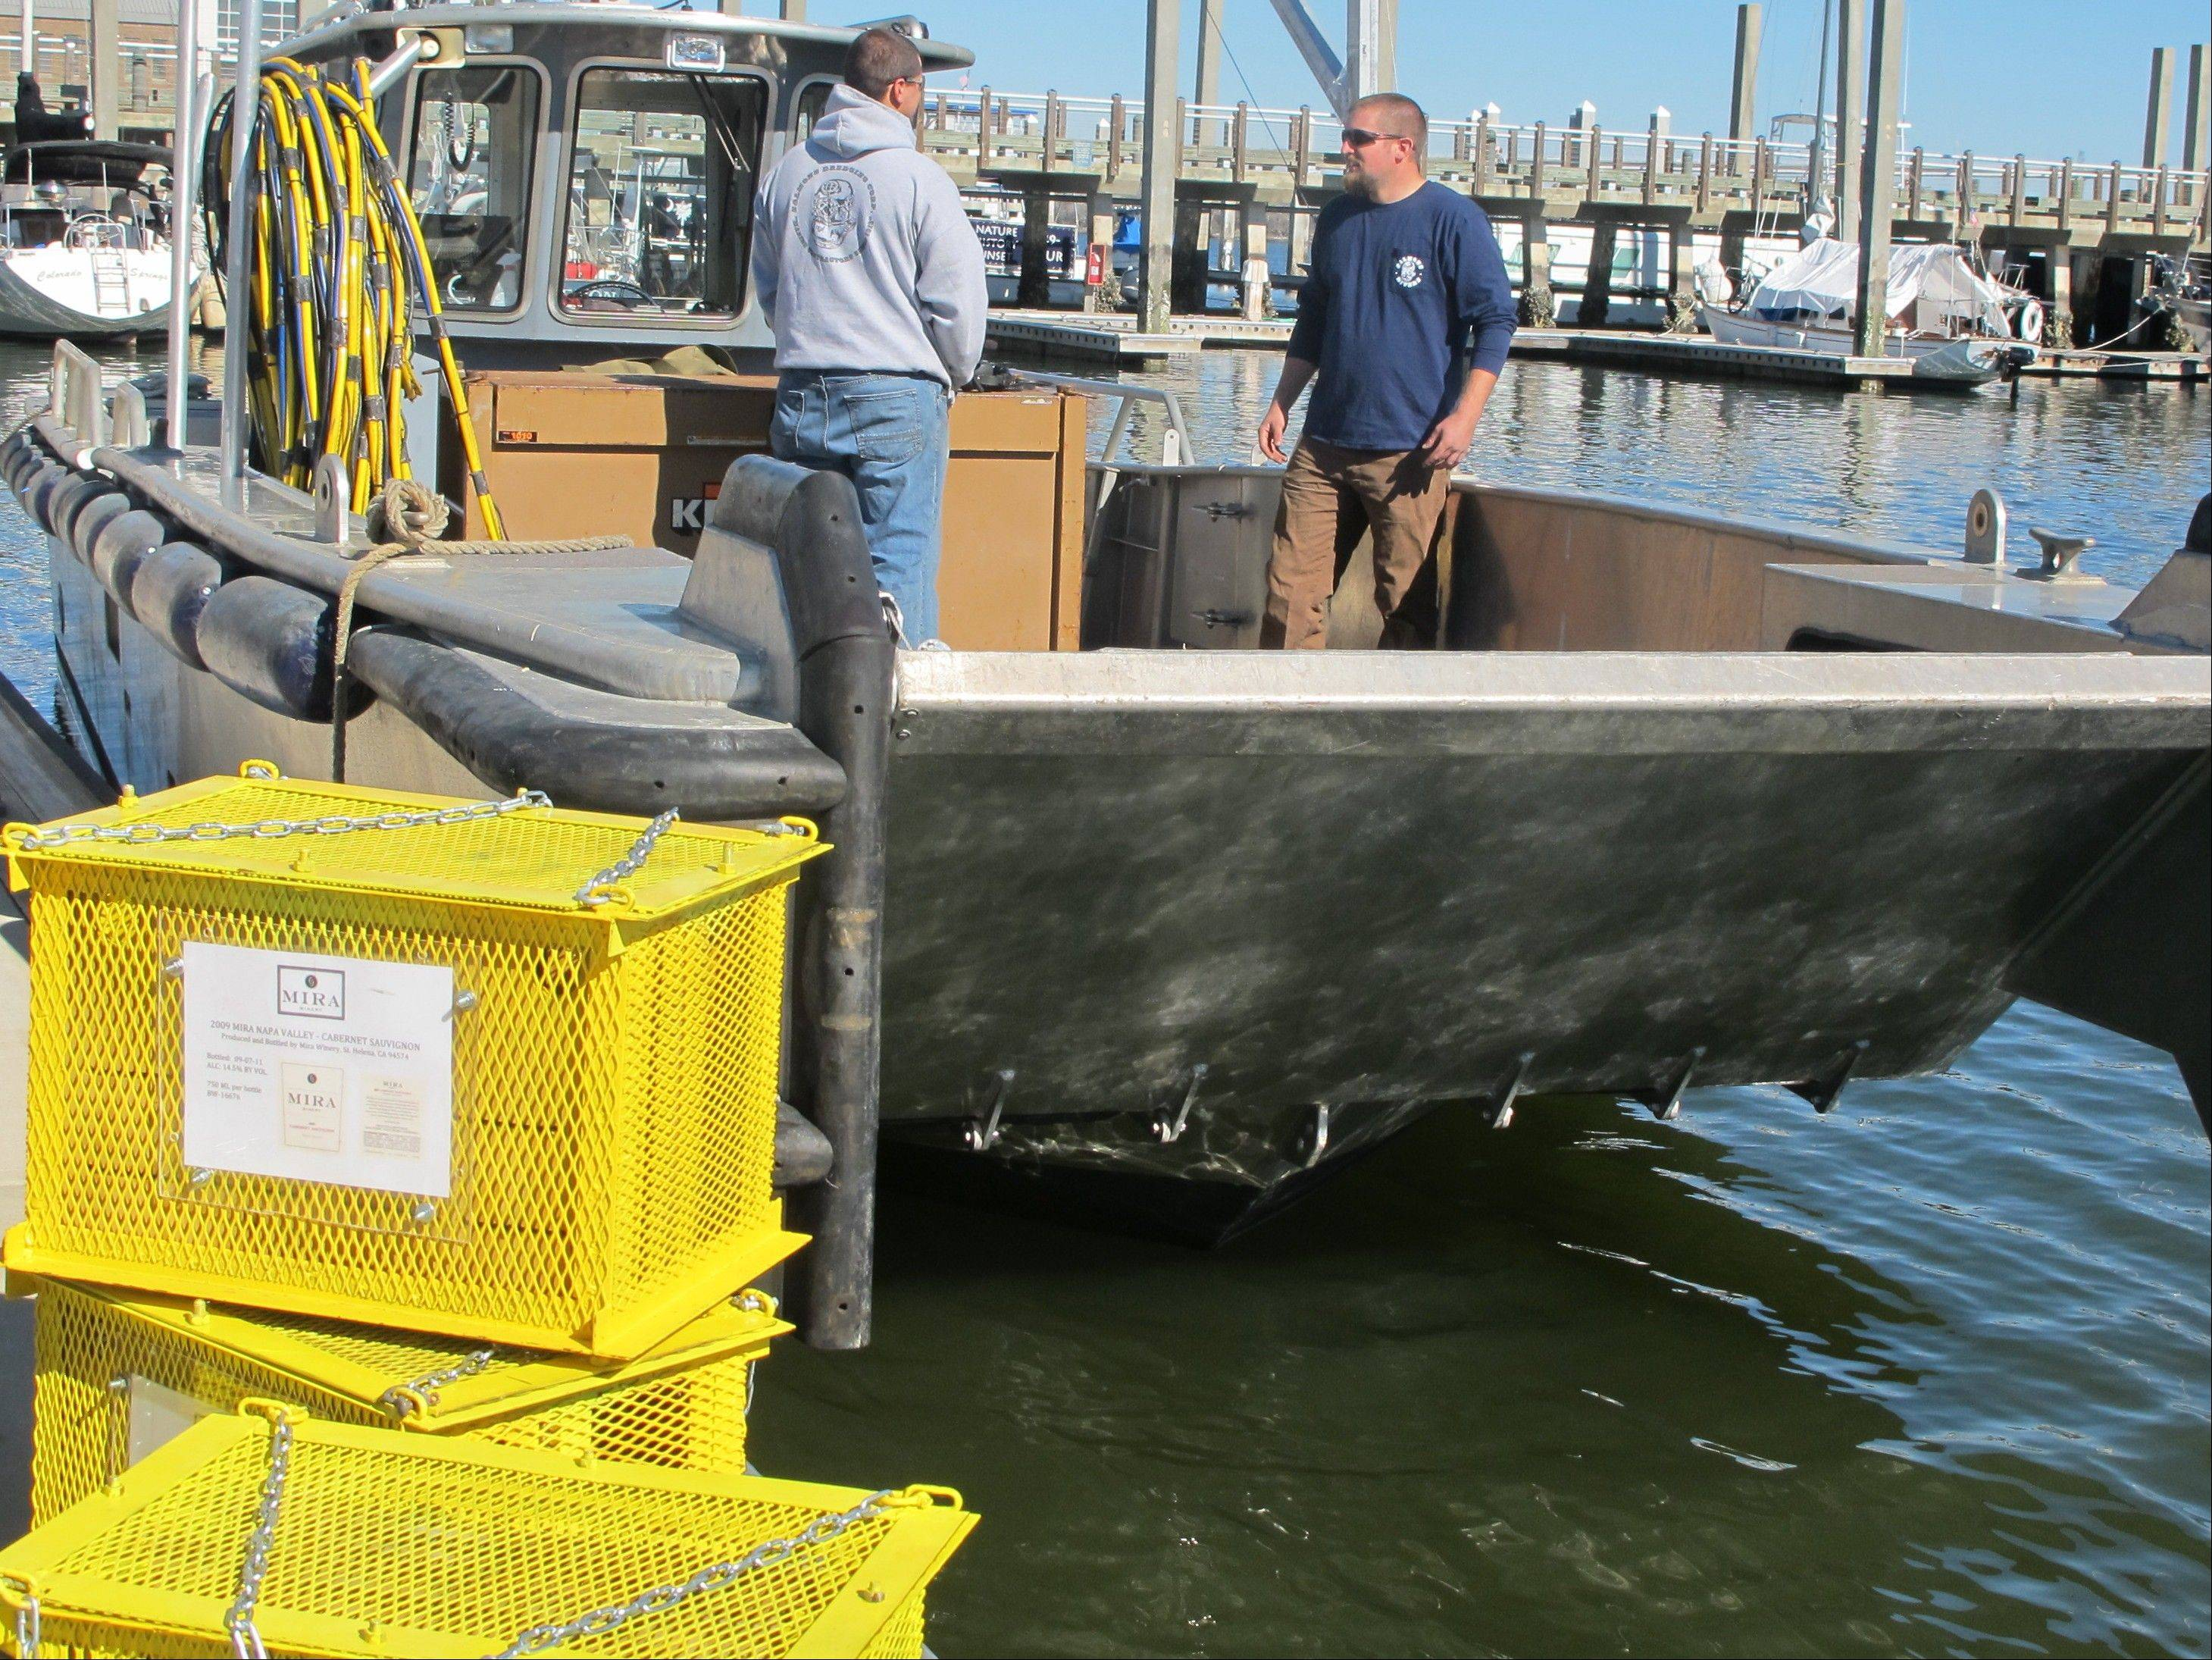 Bottles of cabernet sauvignon in protective steel cages, left, are ready to be loaded onto a boat in Charleston, S.C., Wednesday. Mira Winery of St. Helena, California, submerged four cases of wine in Charleston Harbor on Wednesday to see what effect the ocean has on aging the wine.